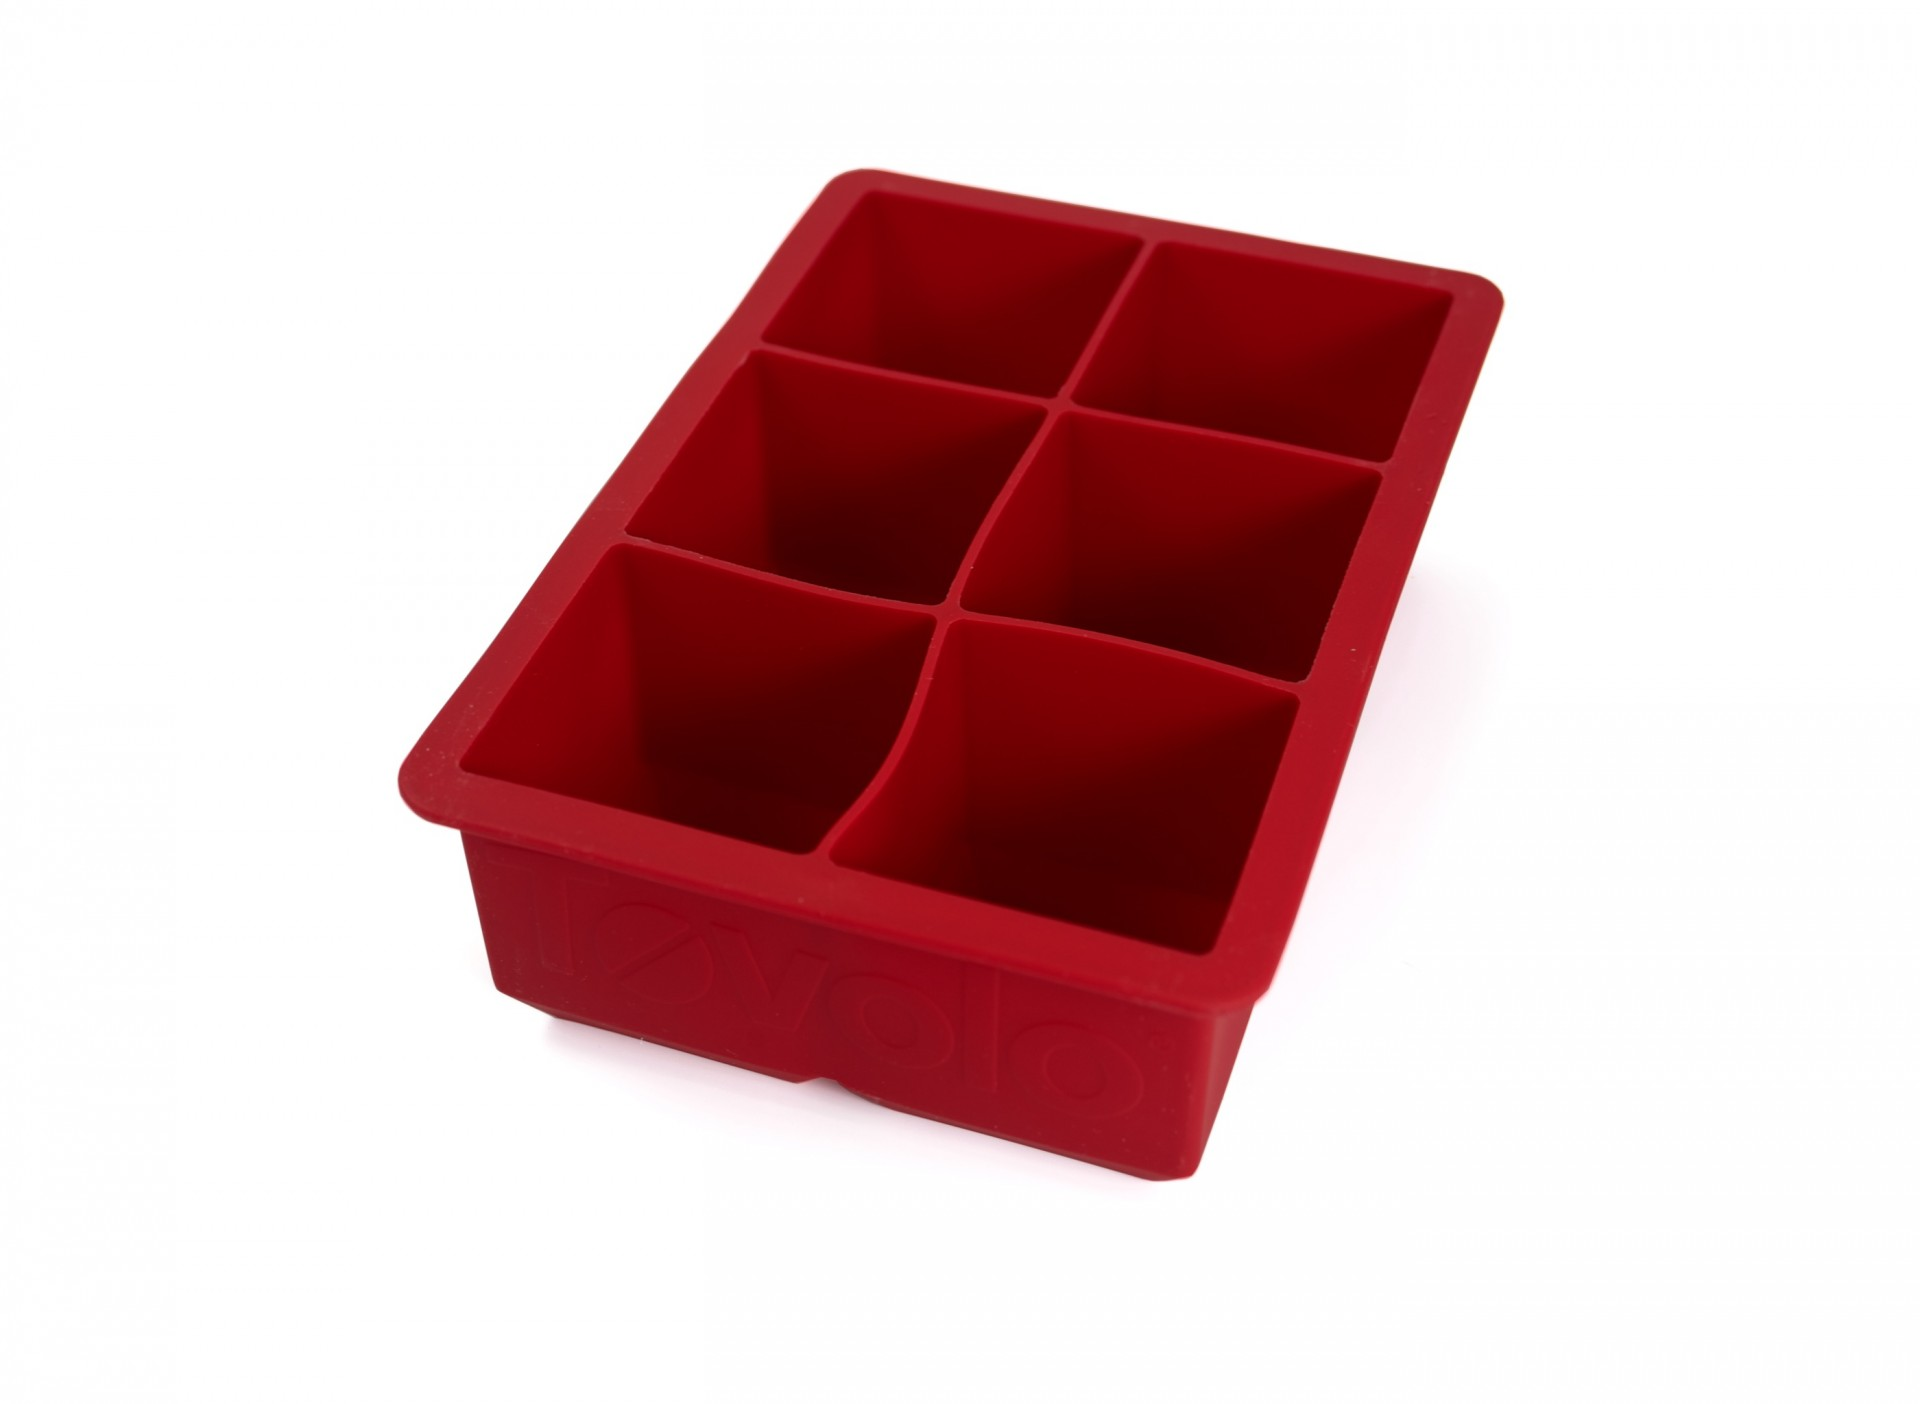 Tovolo's King Ice Cube Tray. ($8)